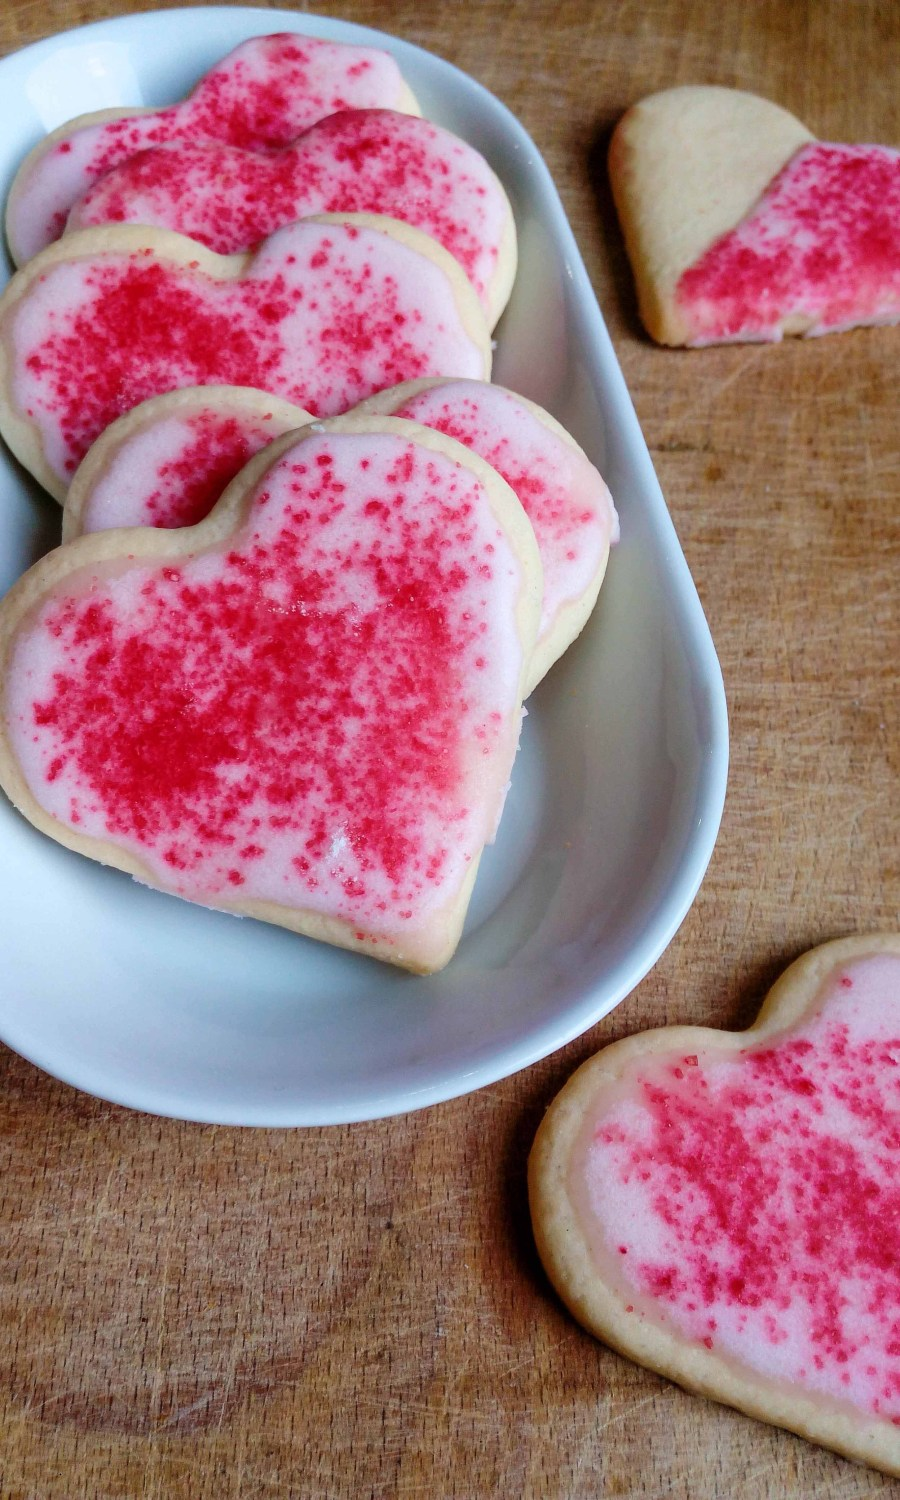 Searching for some Valentine's day ideas? Here is one simple recipe for Valentine's day sugar cookies! So easy to make, no chilling of the dough required, and so tasty and delicious. You should definitely give this recipe a try! | #valentinesday #sugarcookies #valentinessugarcookies | simplyanchy.com